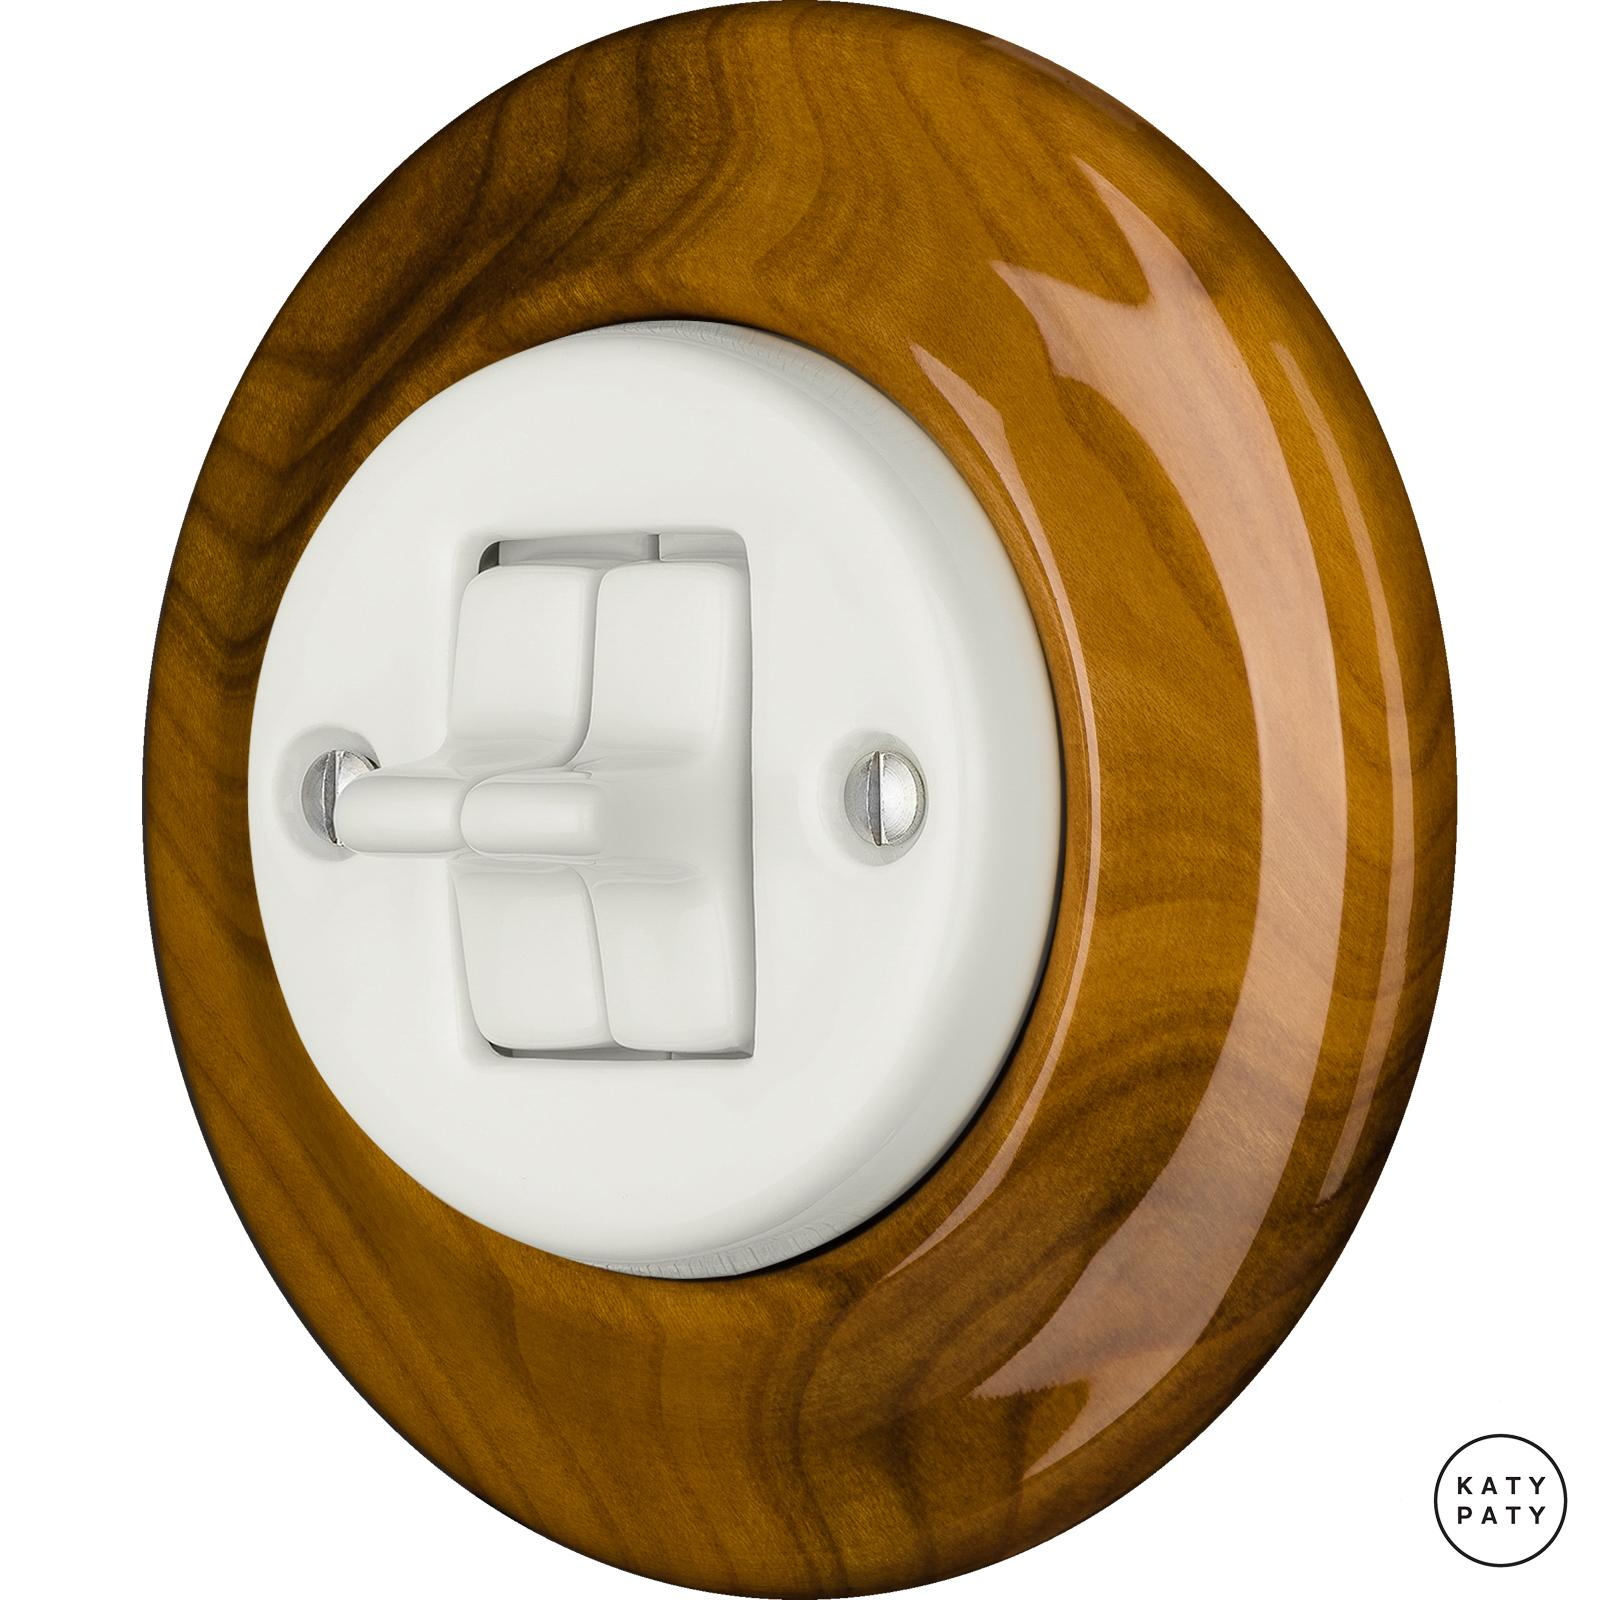 Porcelain toggle switches - a double gang ()  - PADELUS | Katy Paty